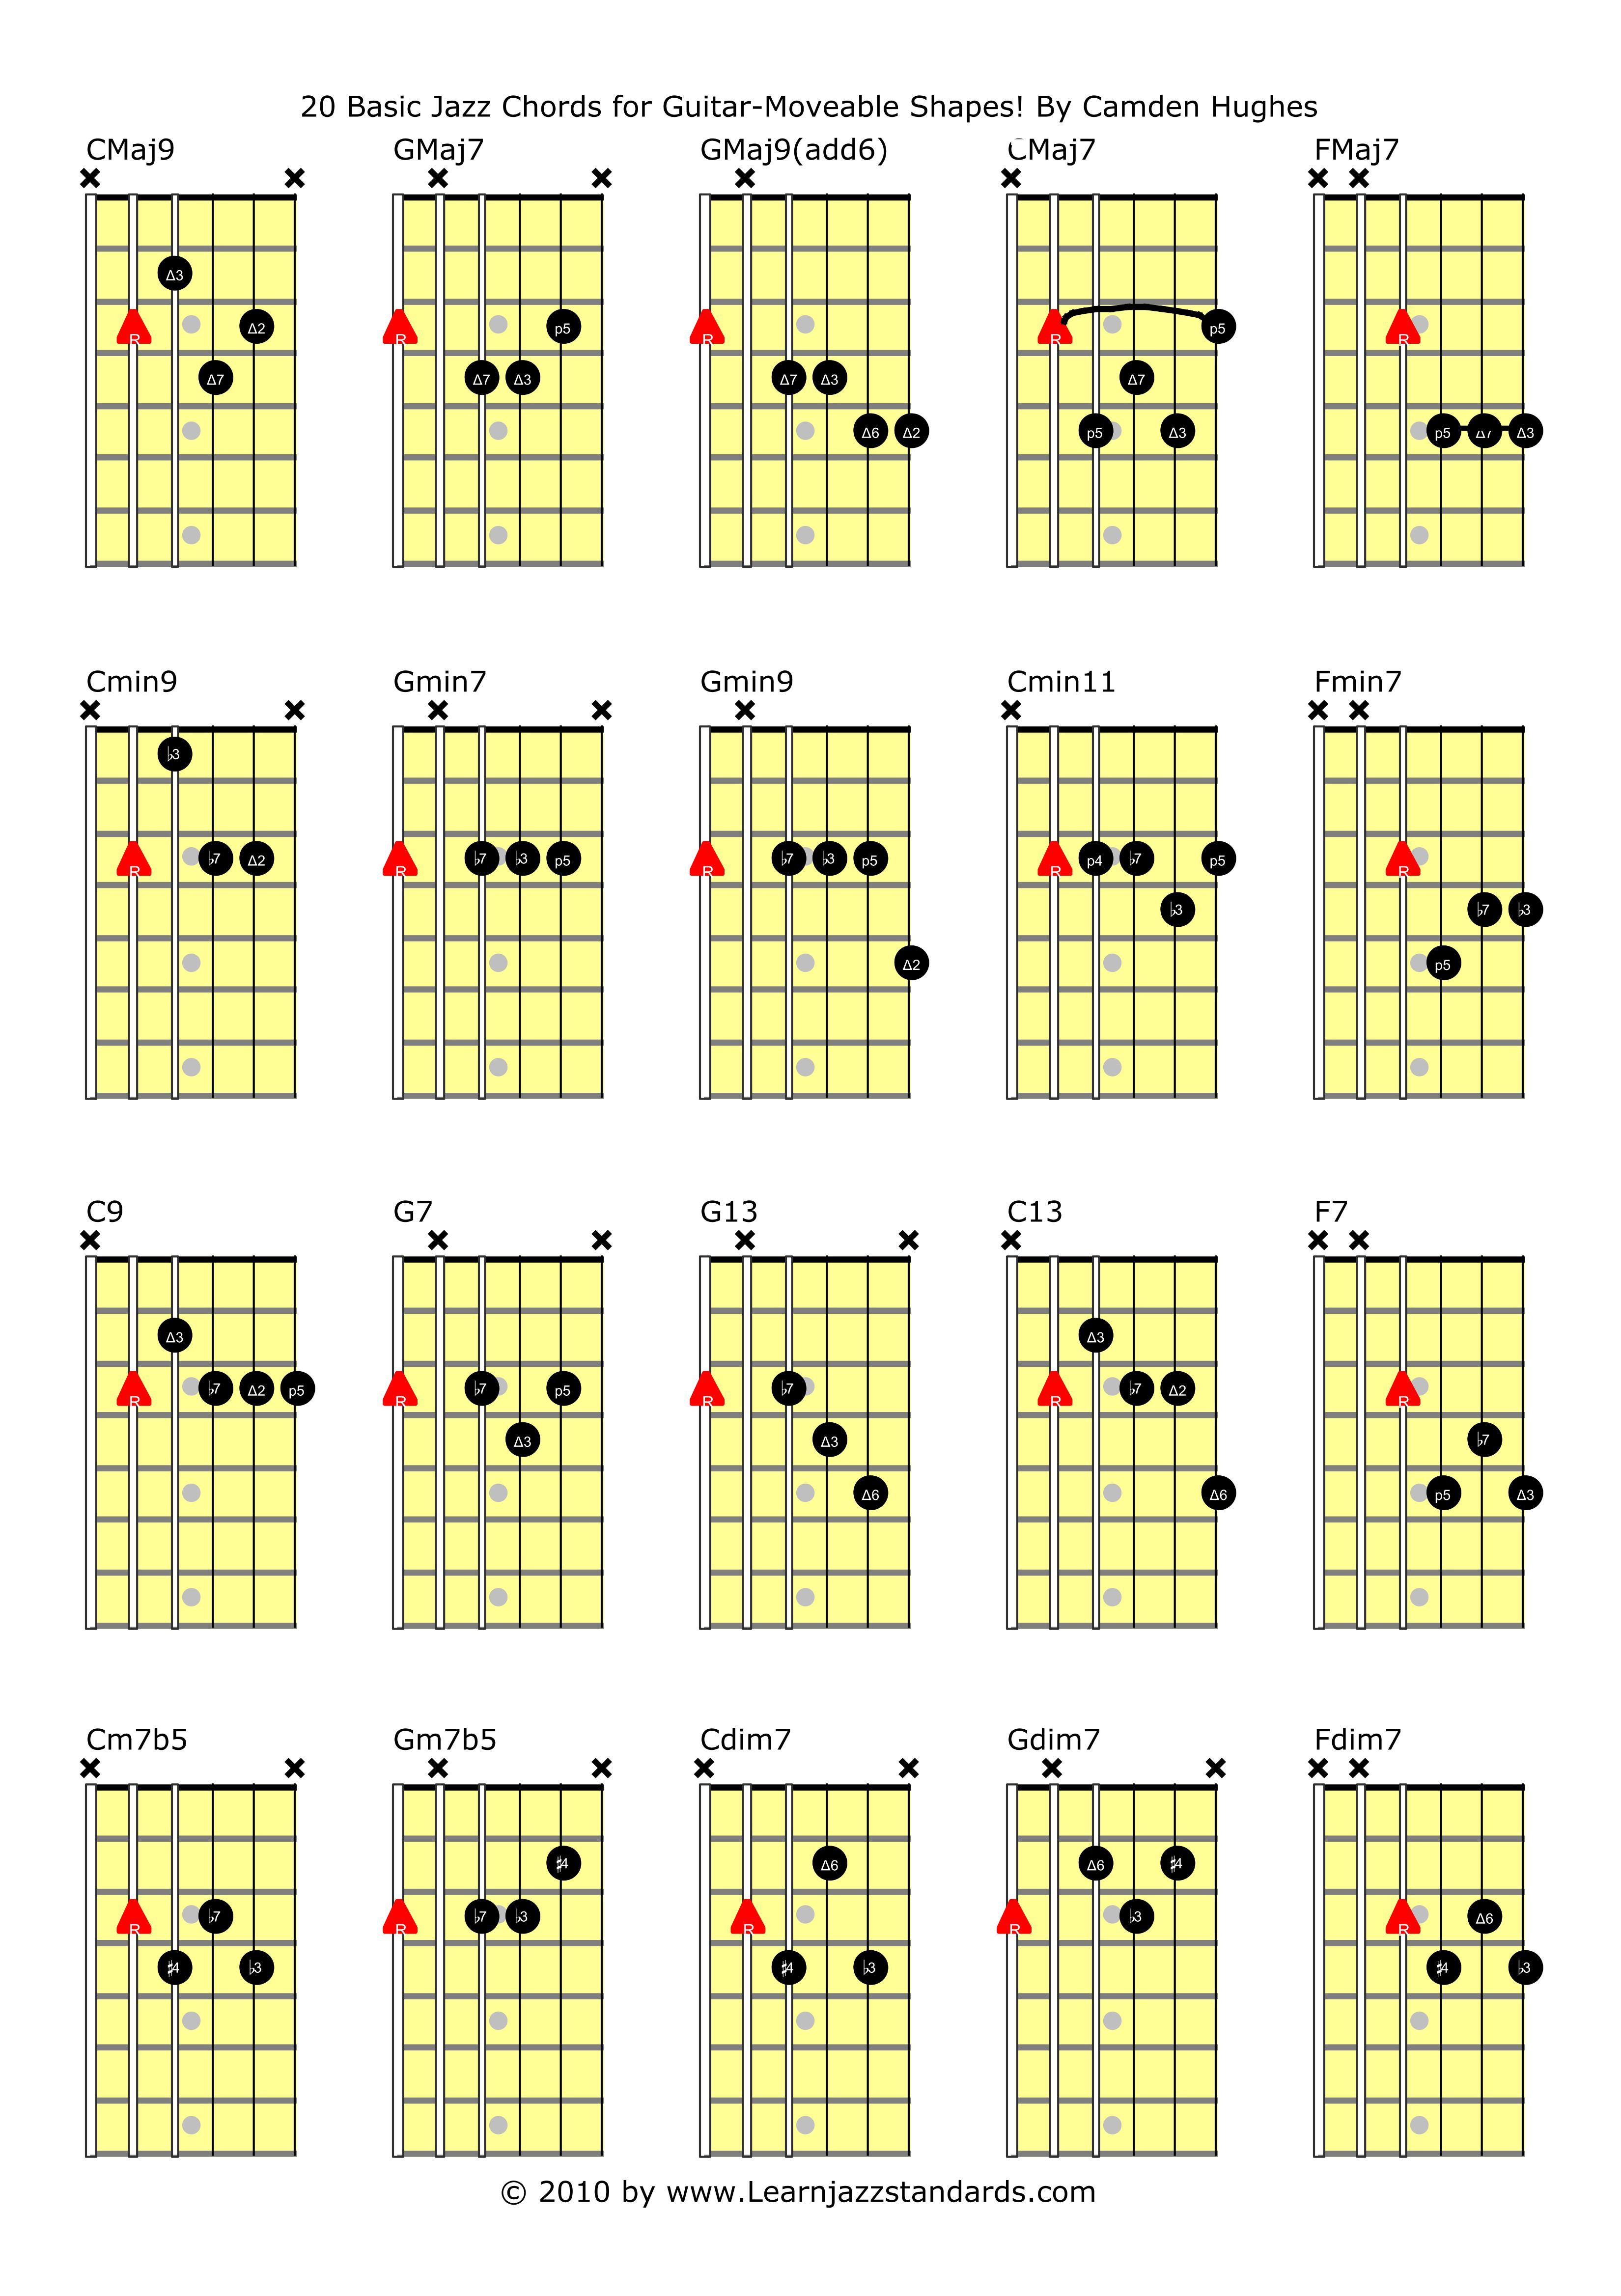 Chords On Guitar 20 Basic Jazz Chords For Guitar Learn Jazz Standards